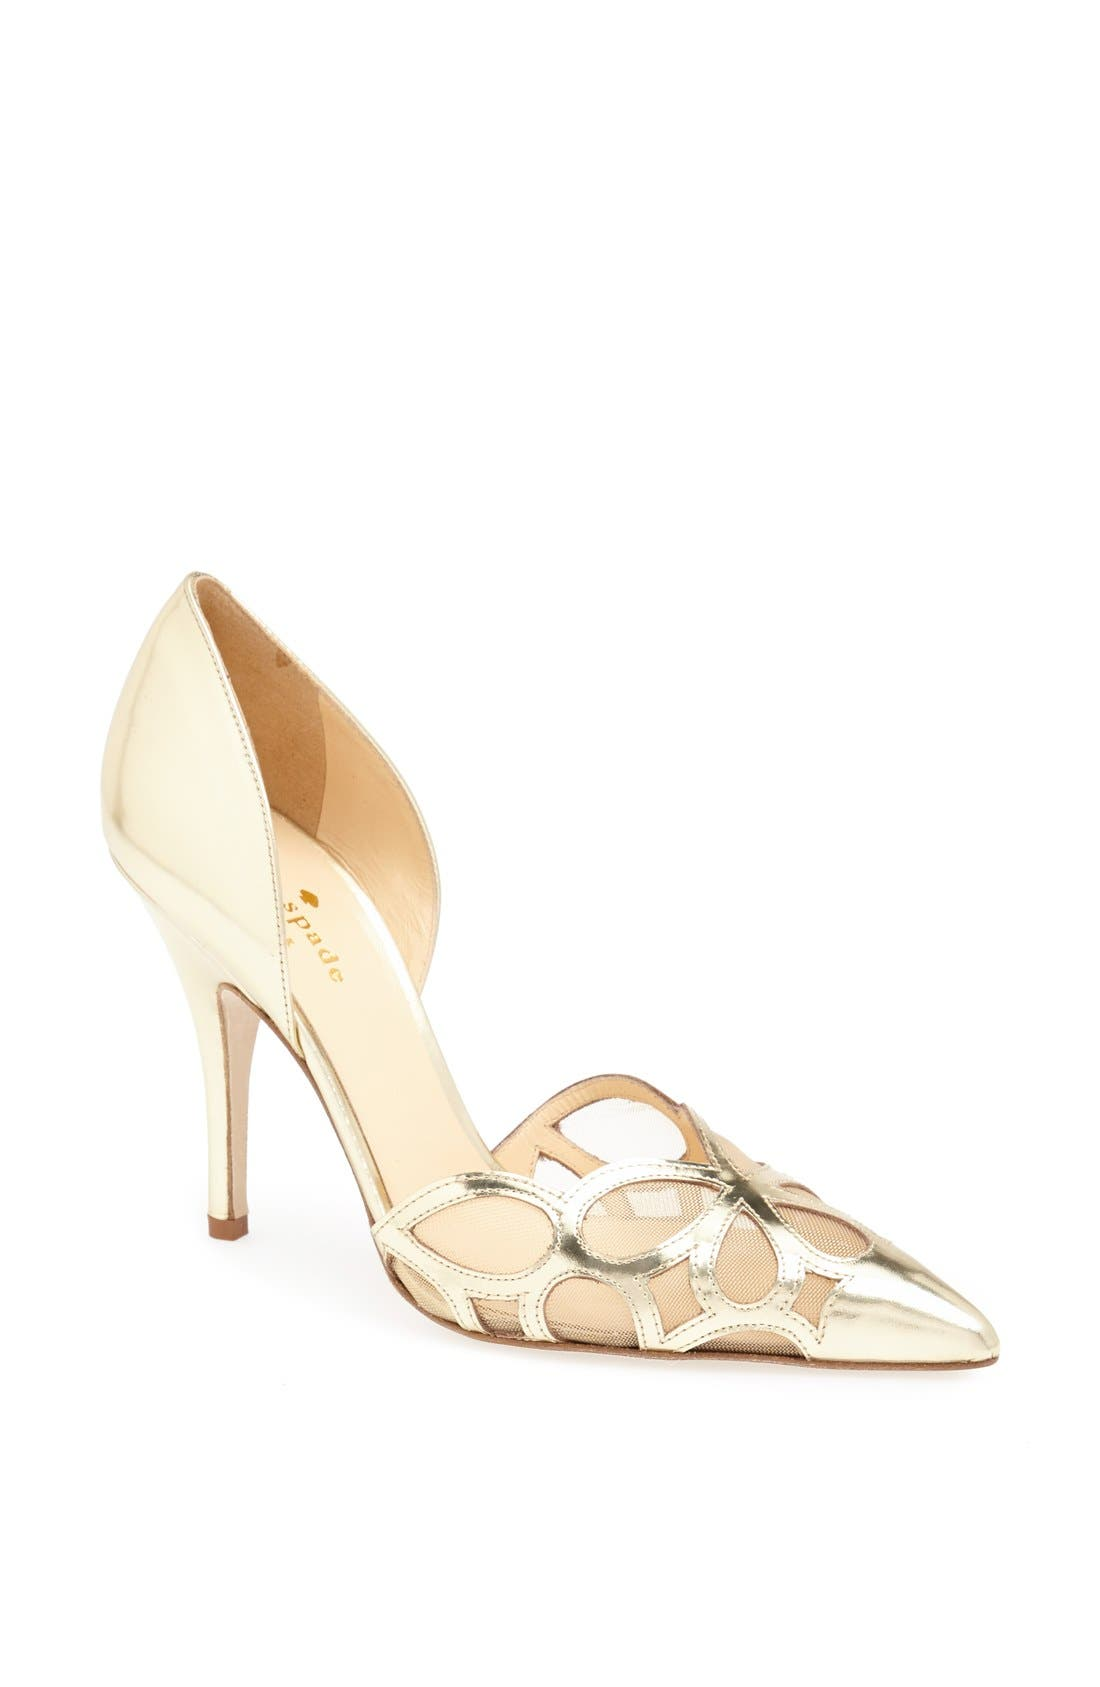 Main Image - kate spade new york 'lauretta' pump